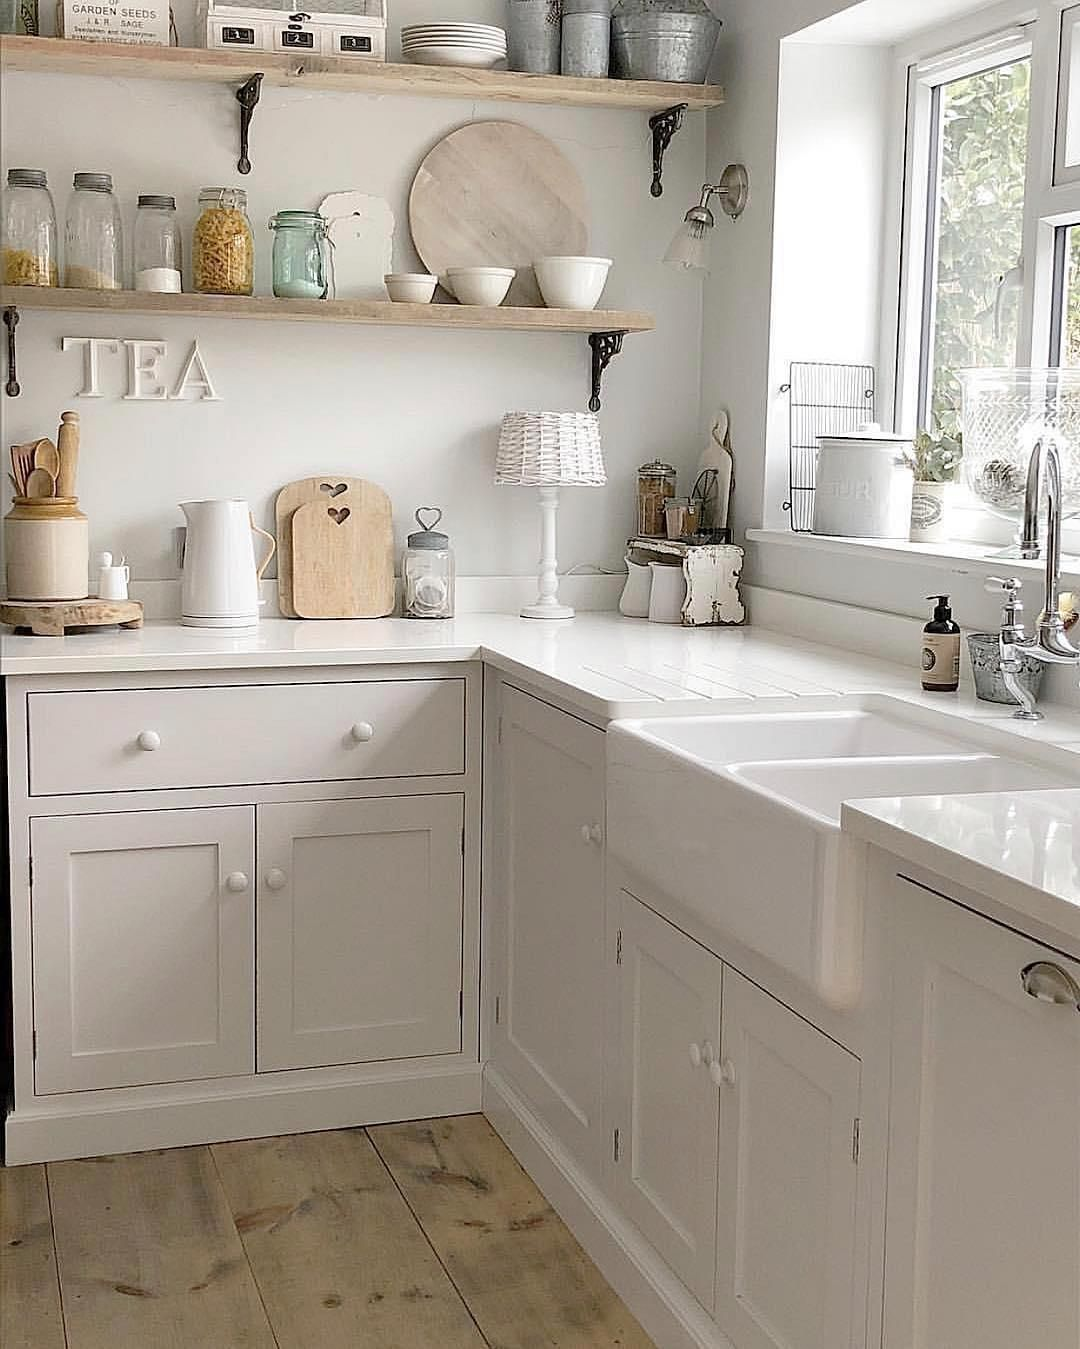 49 clever small kitchen storage ideas for a more efficient space cocinas pequeñas de campo on kitchen organization for small spaces id=97602